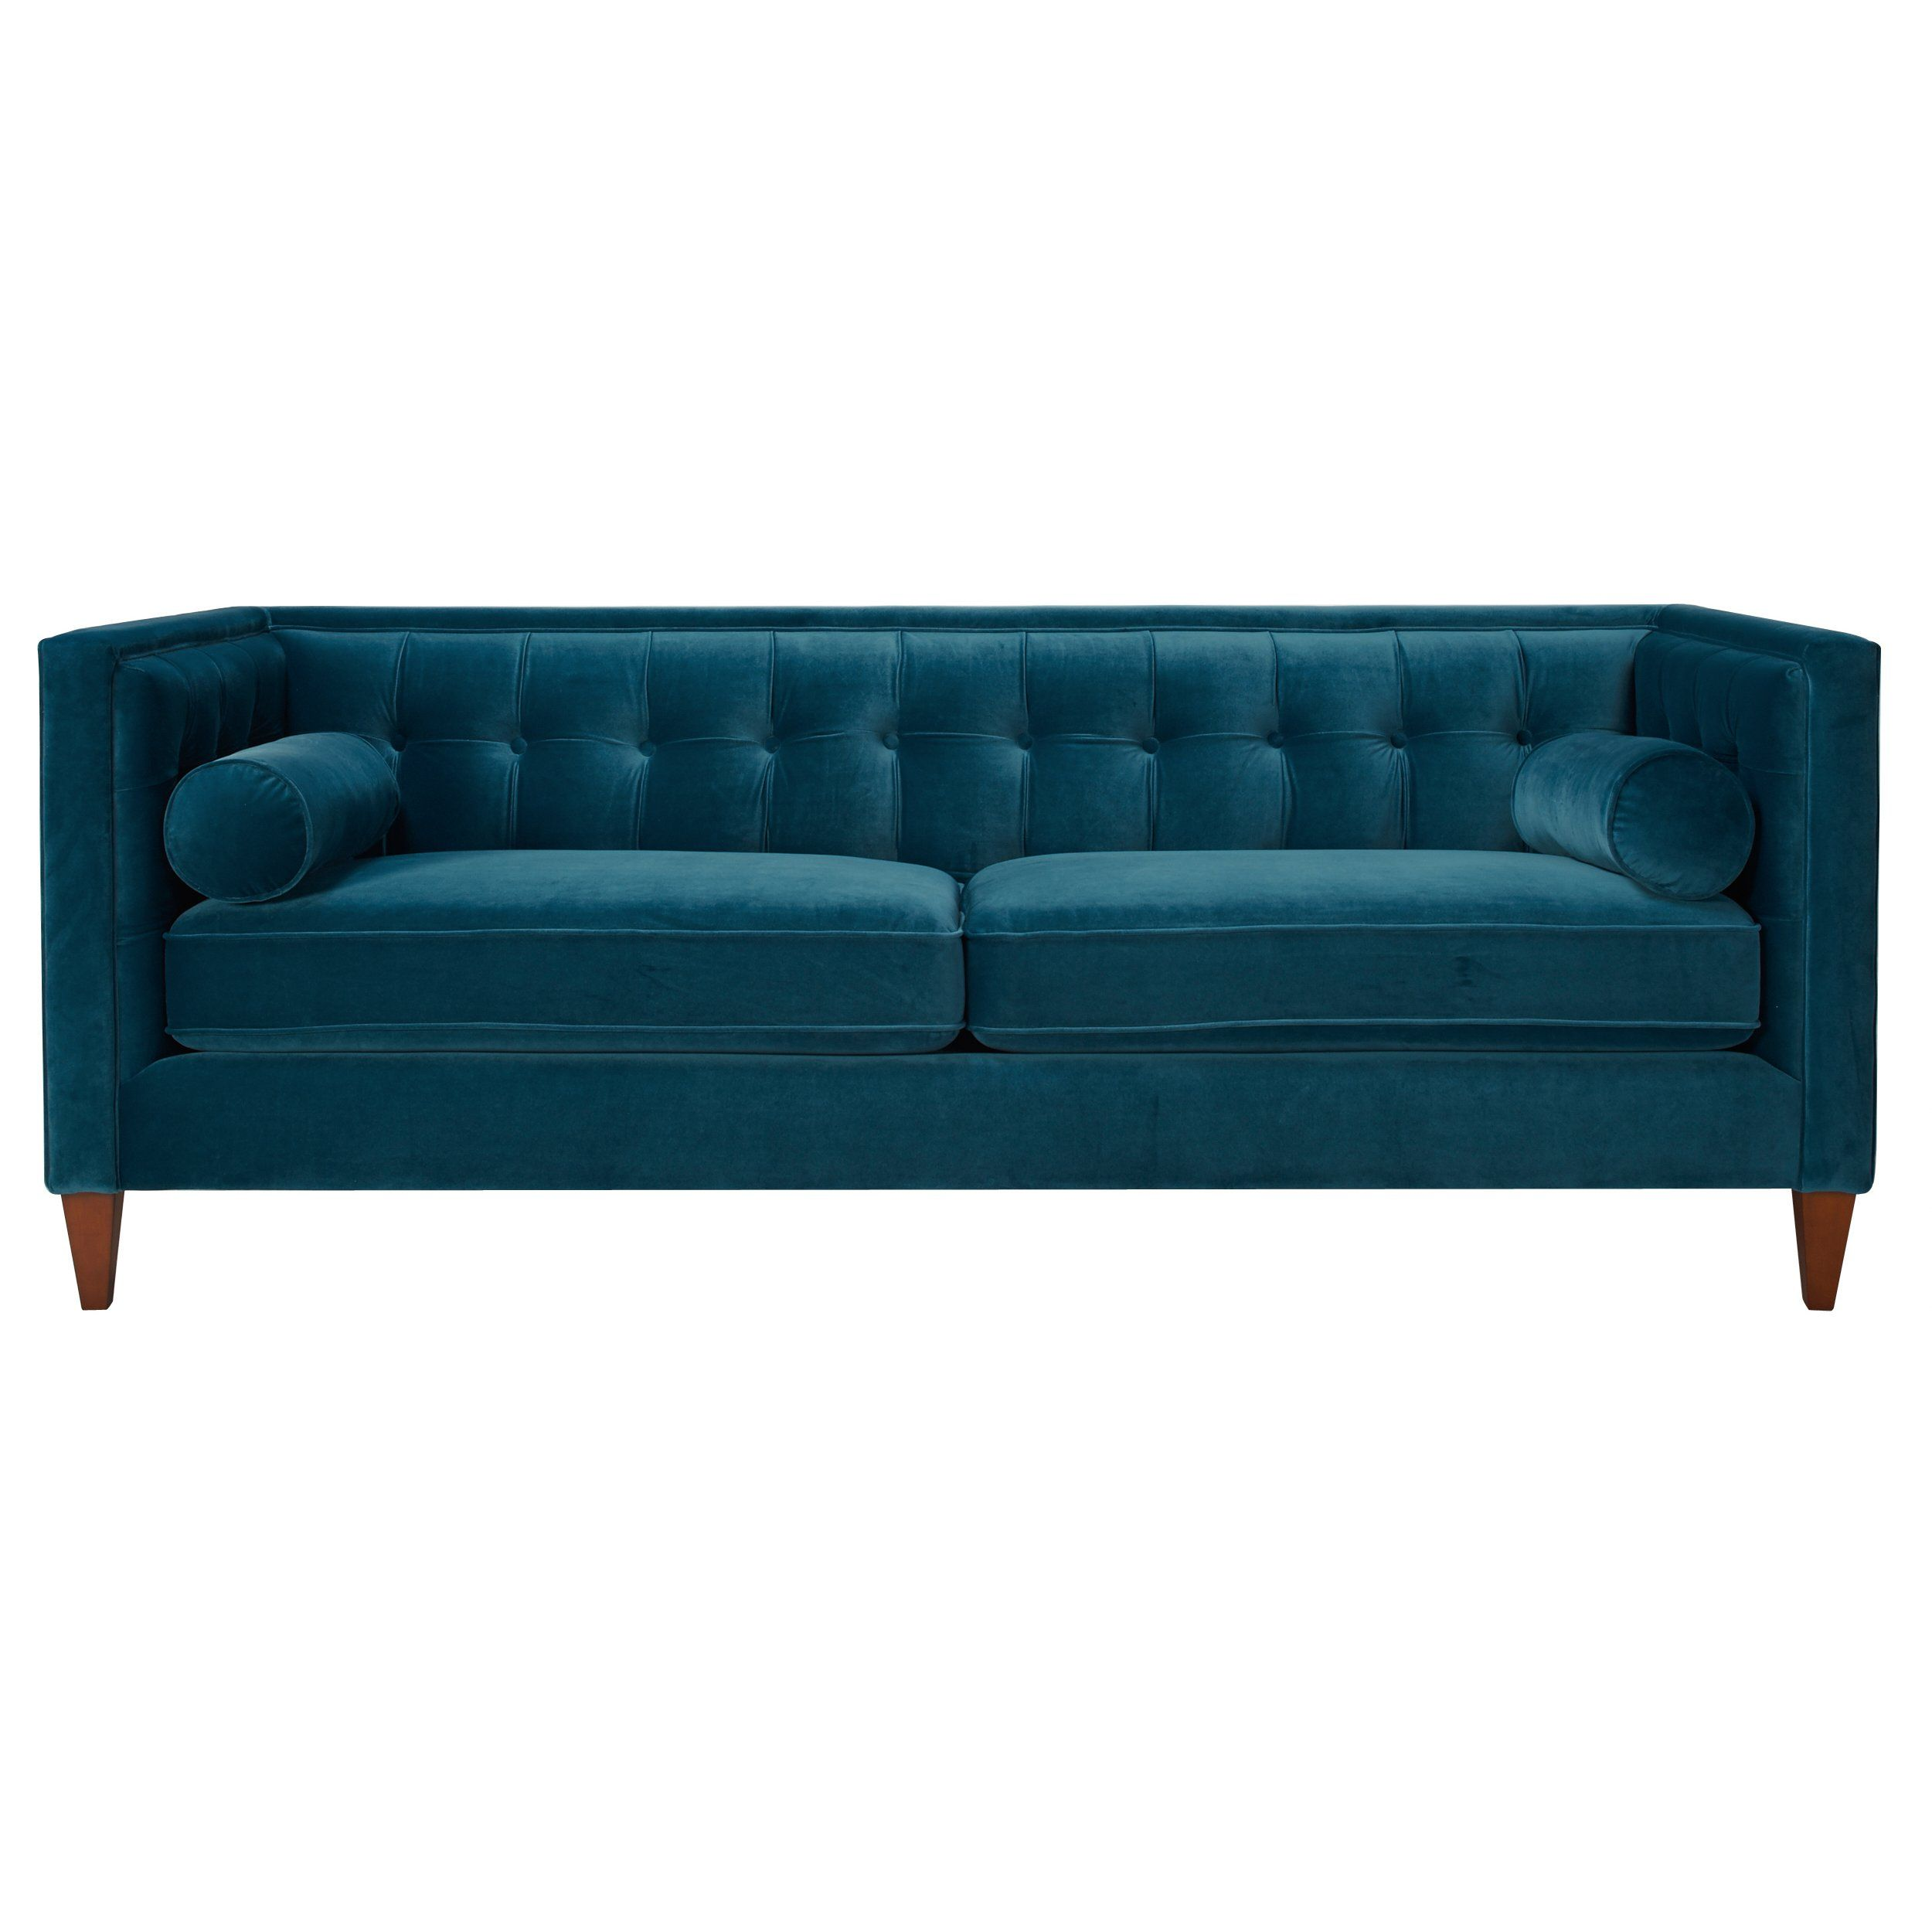 Mercer41 Sprimont Tufted Sofa In Teal Reviews Wayfair